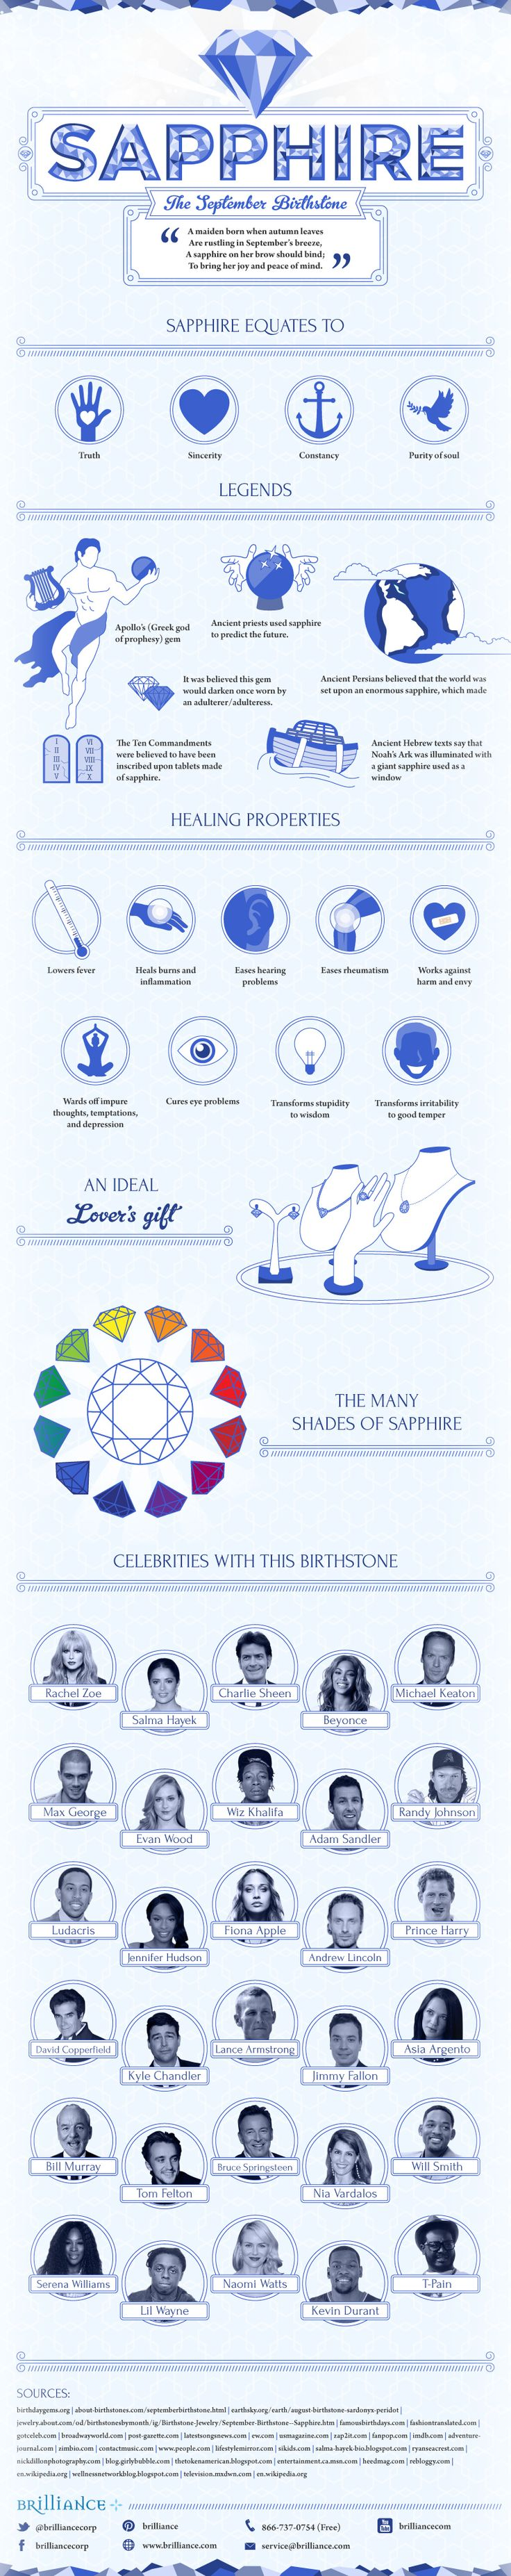 Sapphire - my birthstone..not a huge fan of Sapphires, prefer Emeralds!